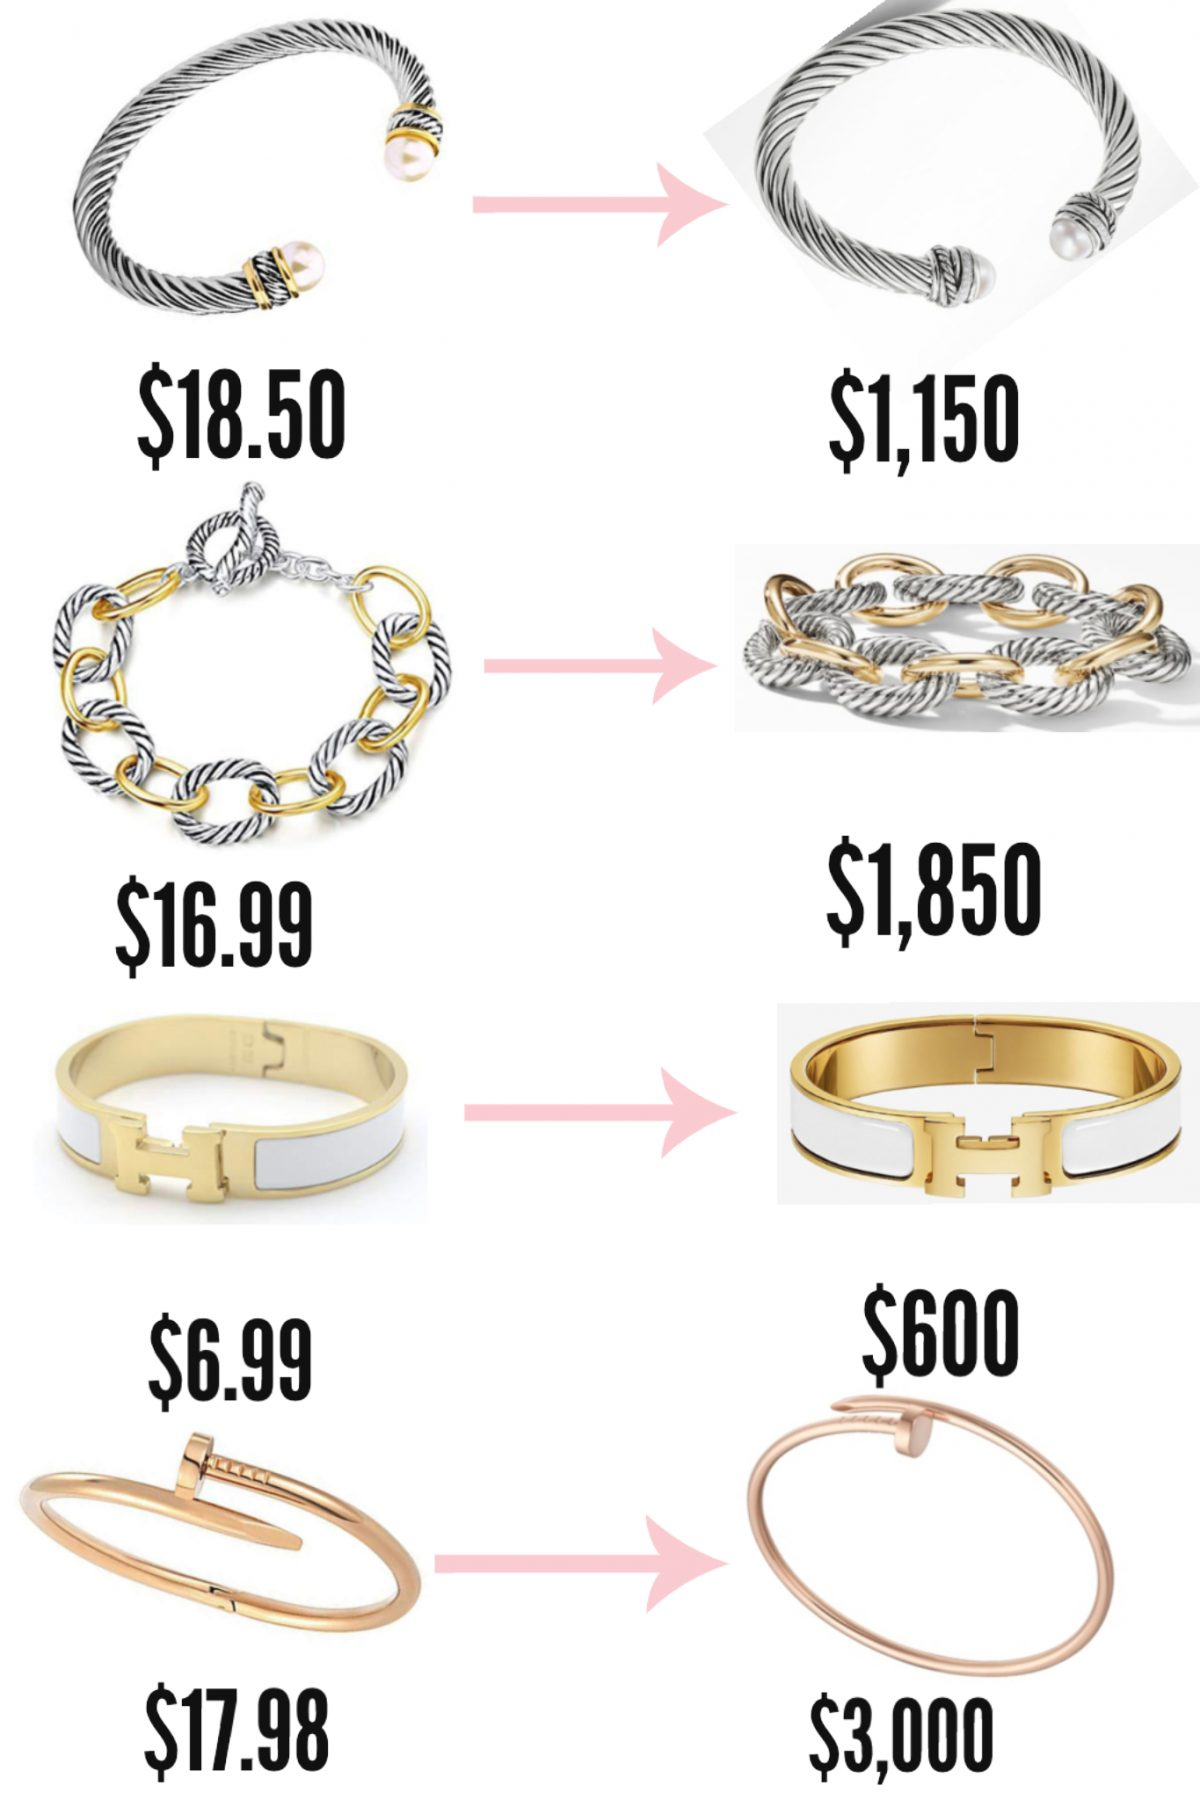 The Best Designer Jewelry Dupes On Amazon | North Carolina fashion and lifestyle blogger Jessica Linn sharing David Yurman, Cartier, and Hermes designer dupes available on Amazon.